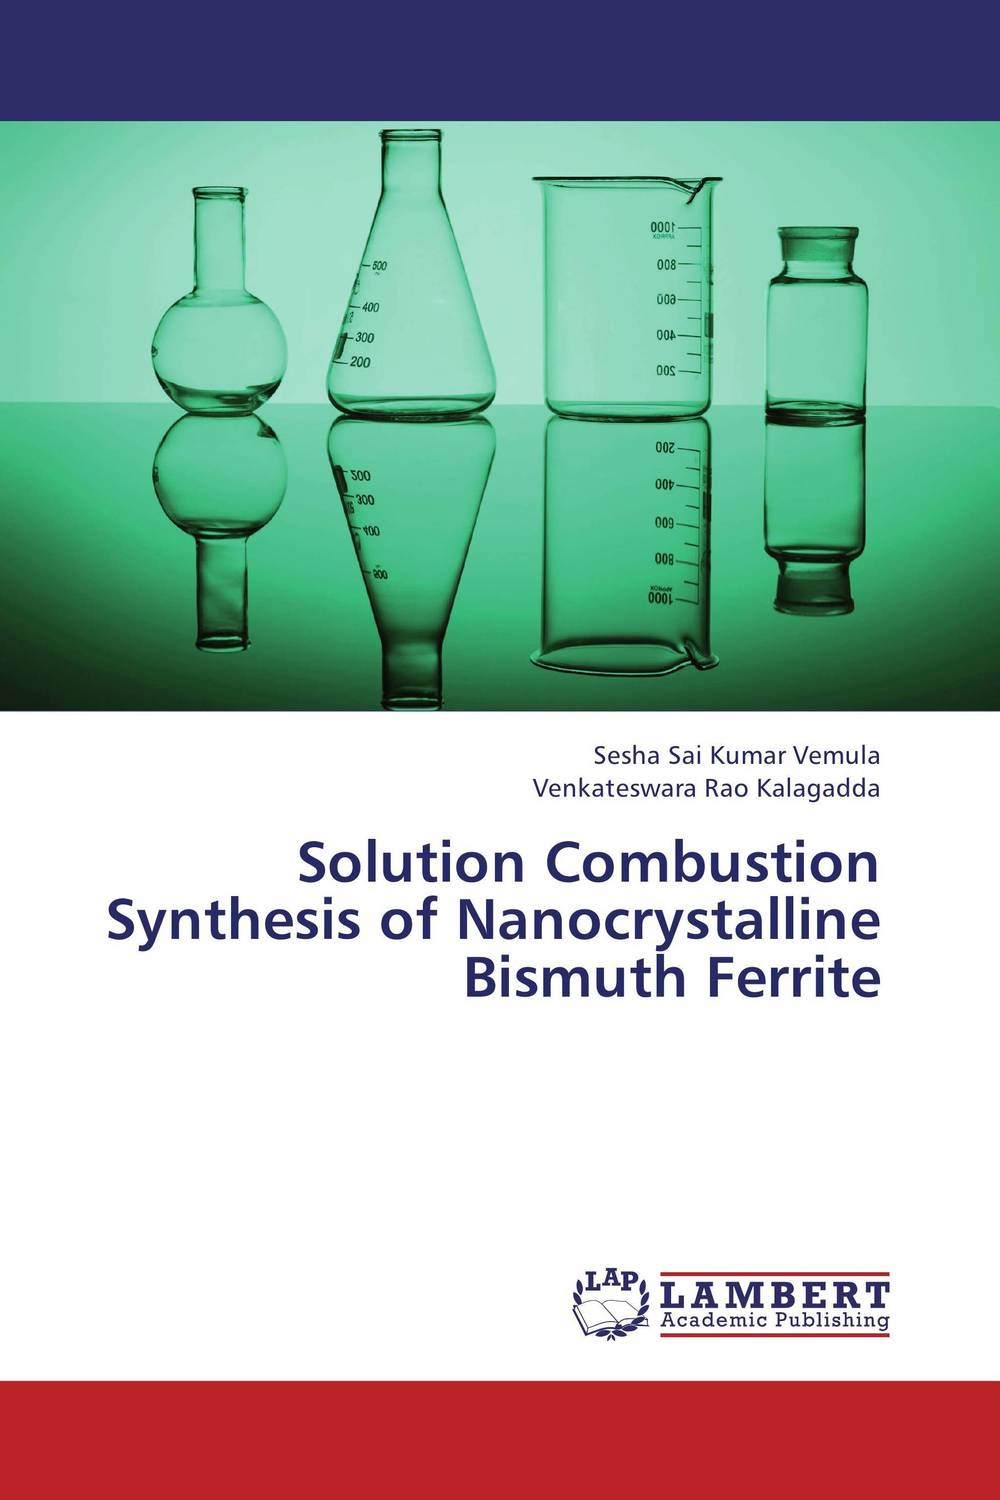 Solution Combustion Synthesis of Nanocrystalline Bismuth Ferrite synthesis of doped lithium aluminate nanocrystalline powders